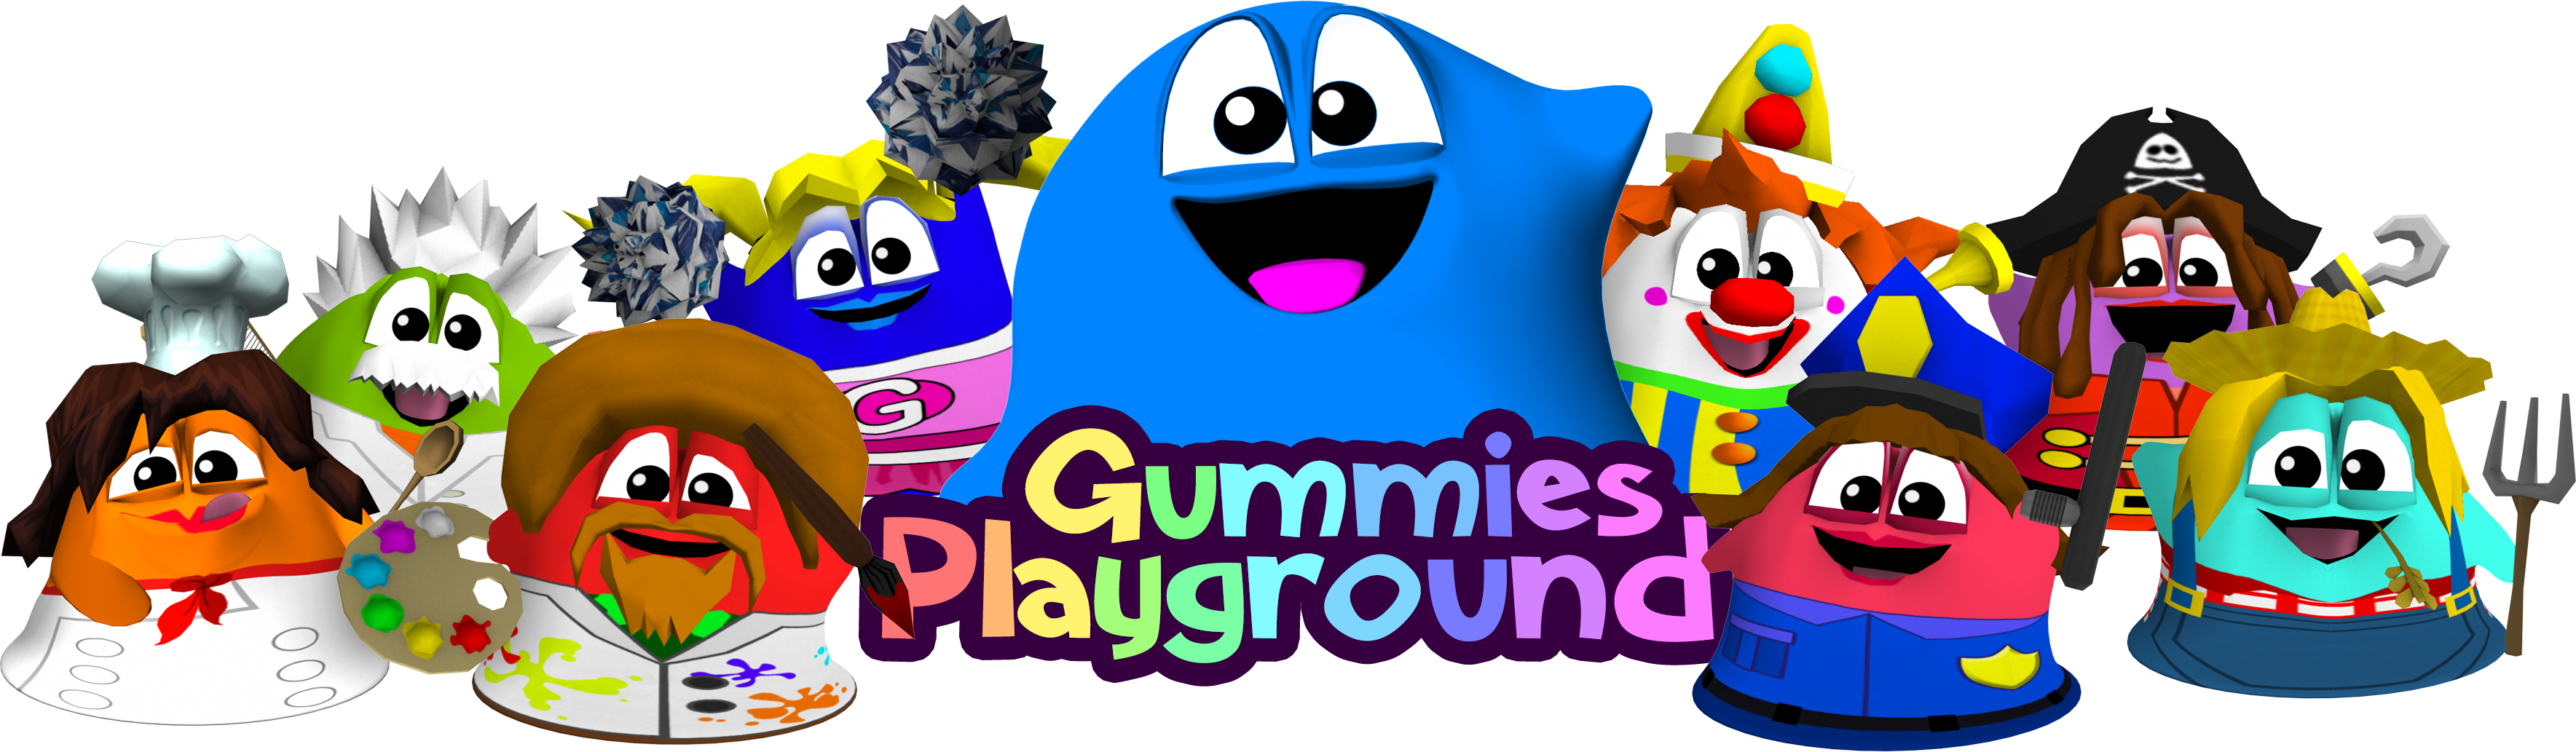 Squink games gummies join. Playground clipart playground game